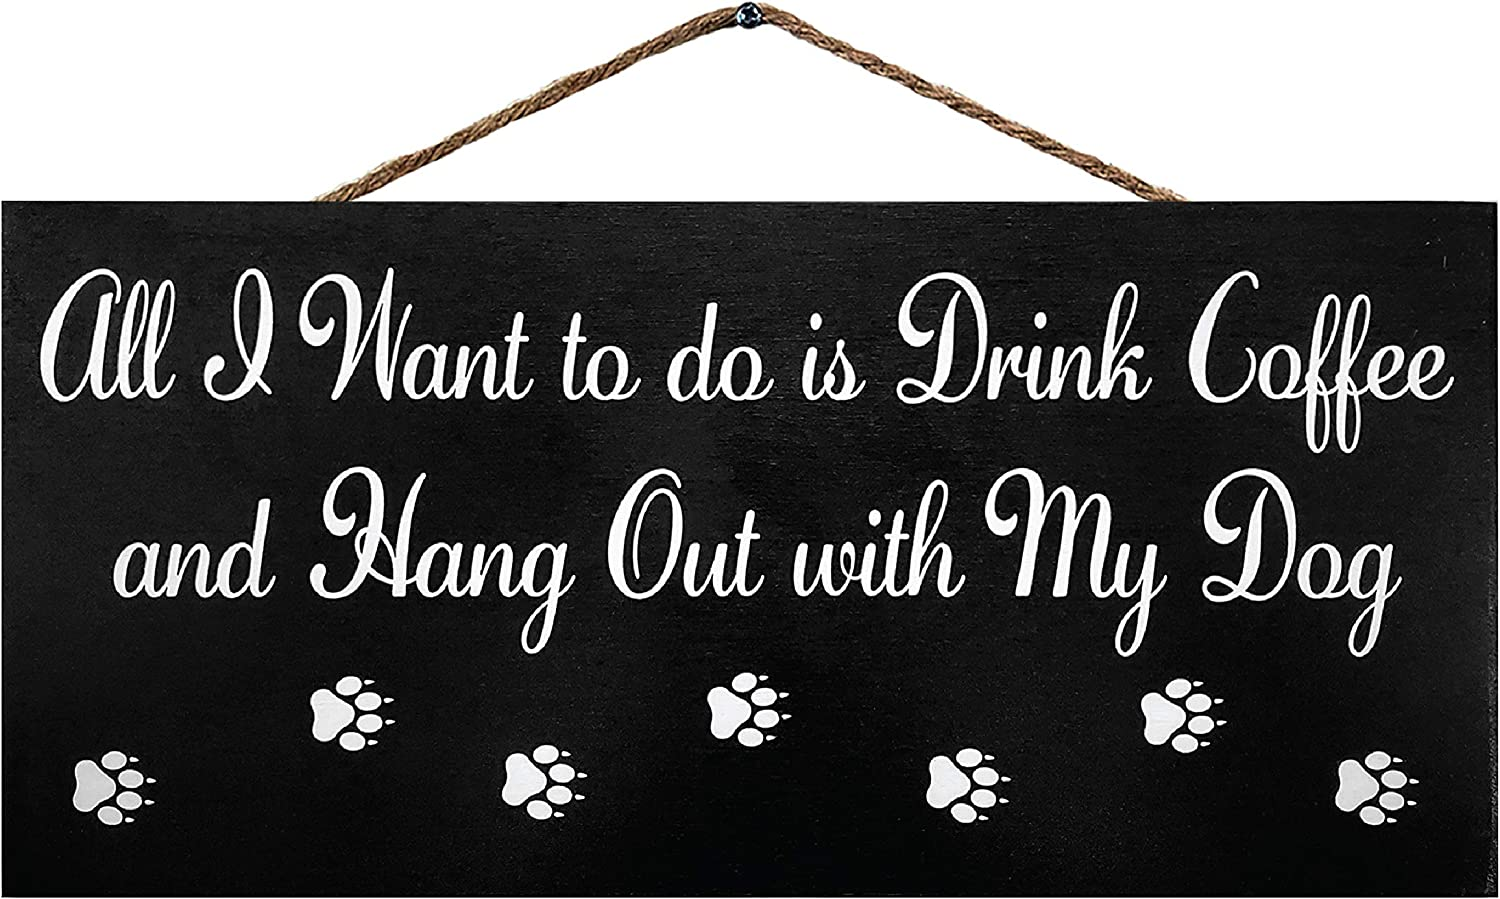 JennyGems All I Want to Do is Drink Coffee and Hang Out with My Dog | Hanging Funny Dog Signs | Home Decor Accent